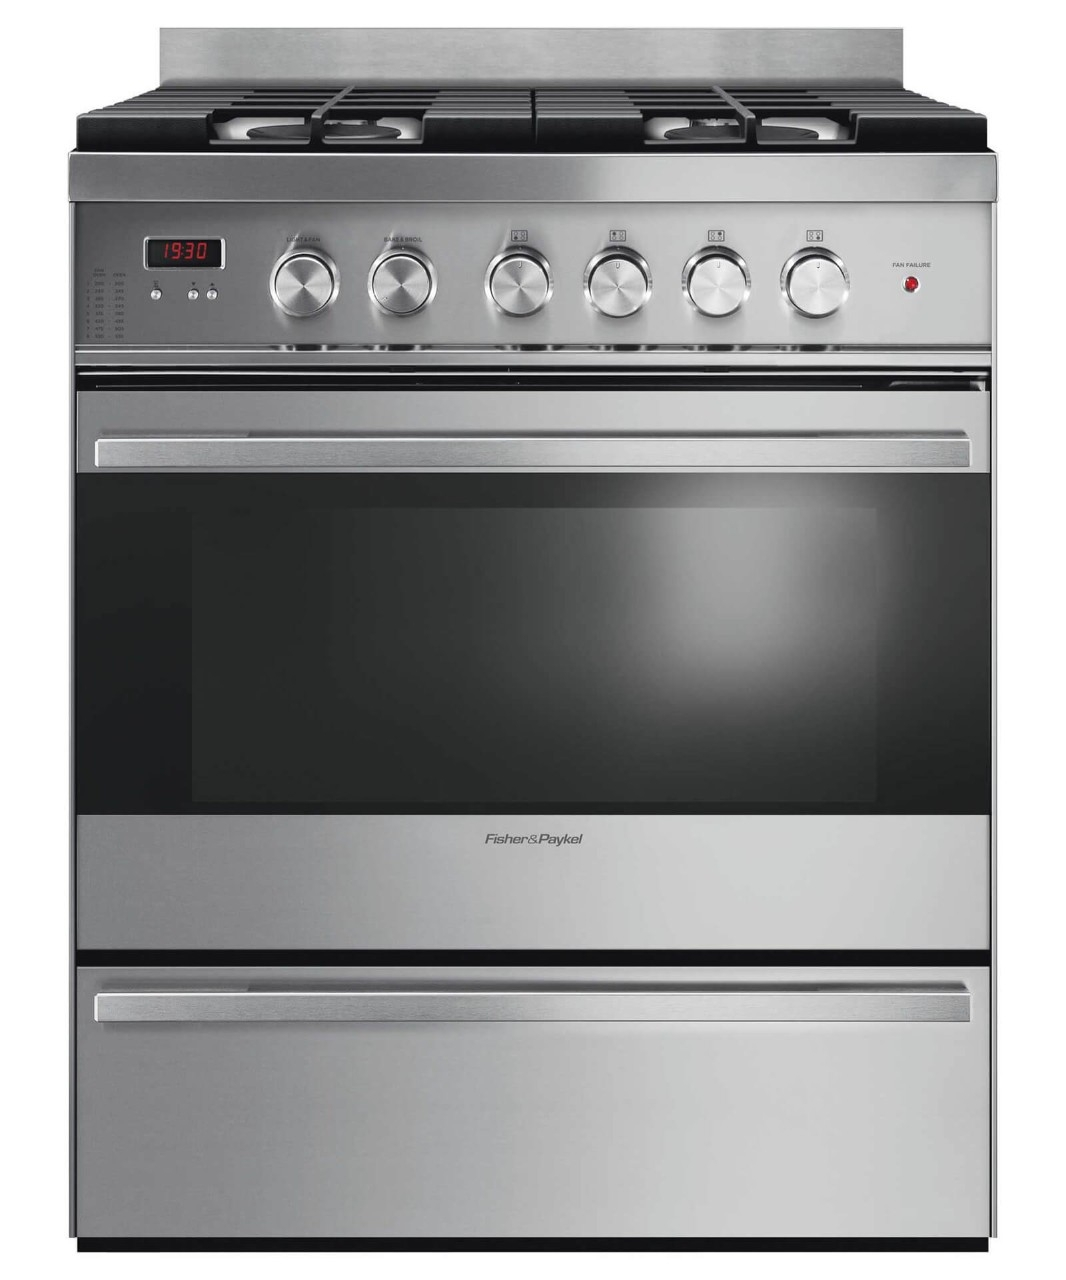 30 gas range thor gas range 30u201d fisher and paykel or30sdbmx1 rogers appliances